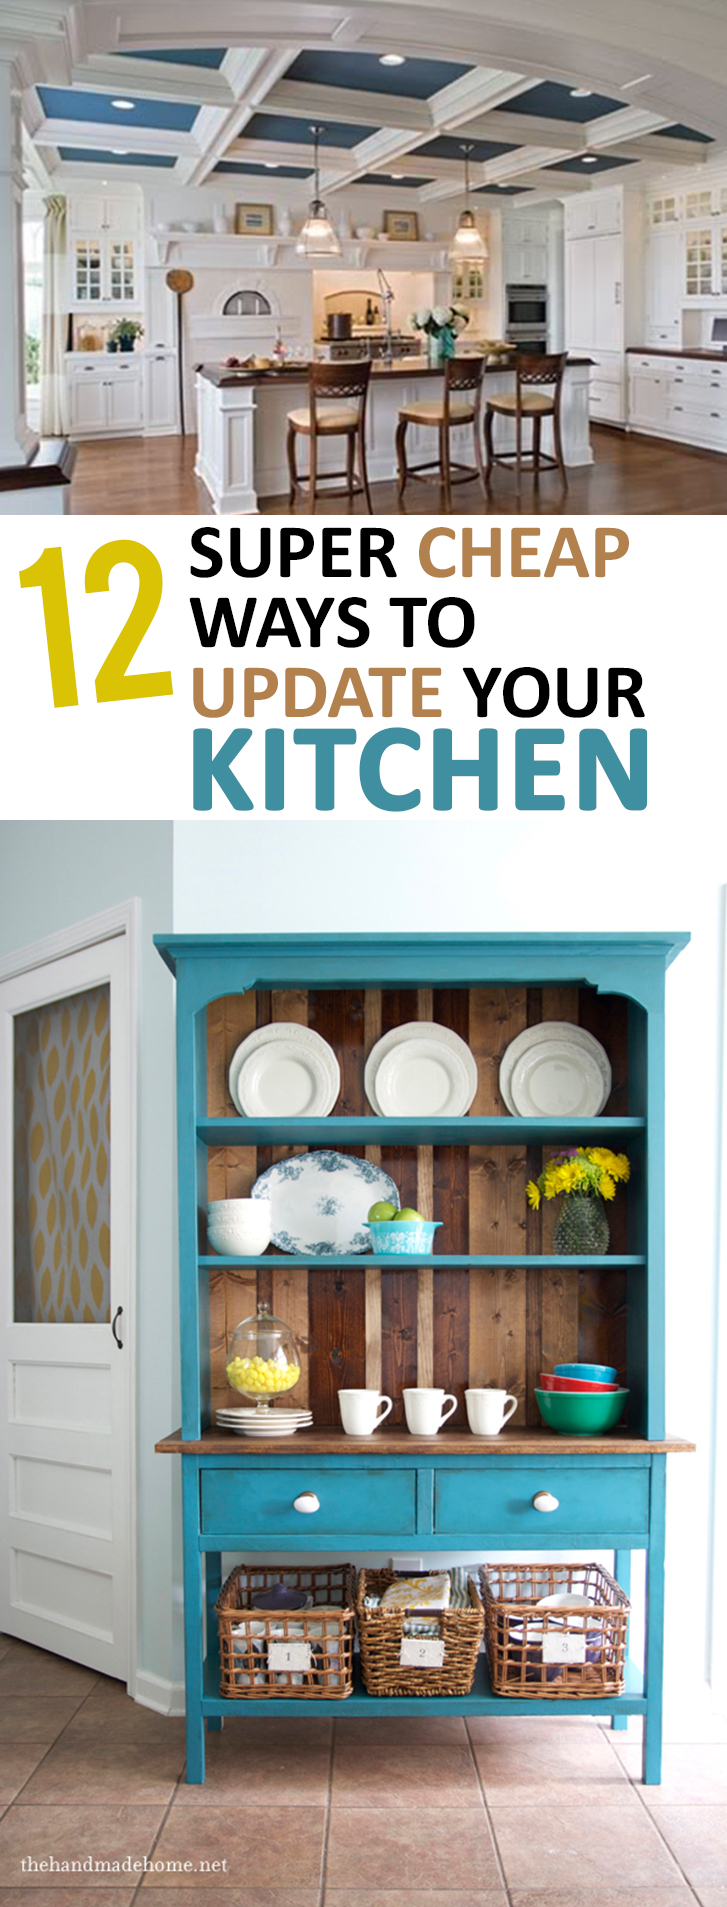 12 Super Cheap Ways To Update Your Kitchen